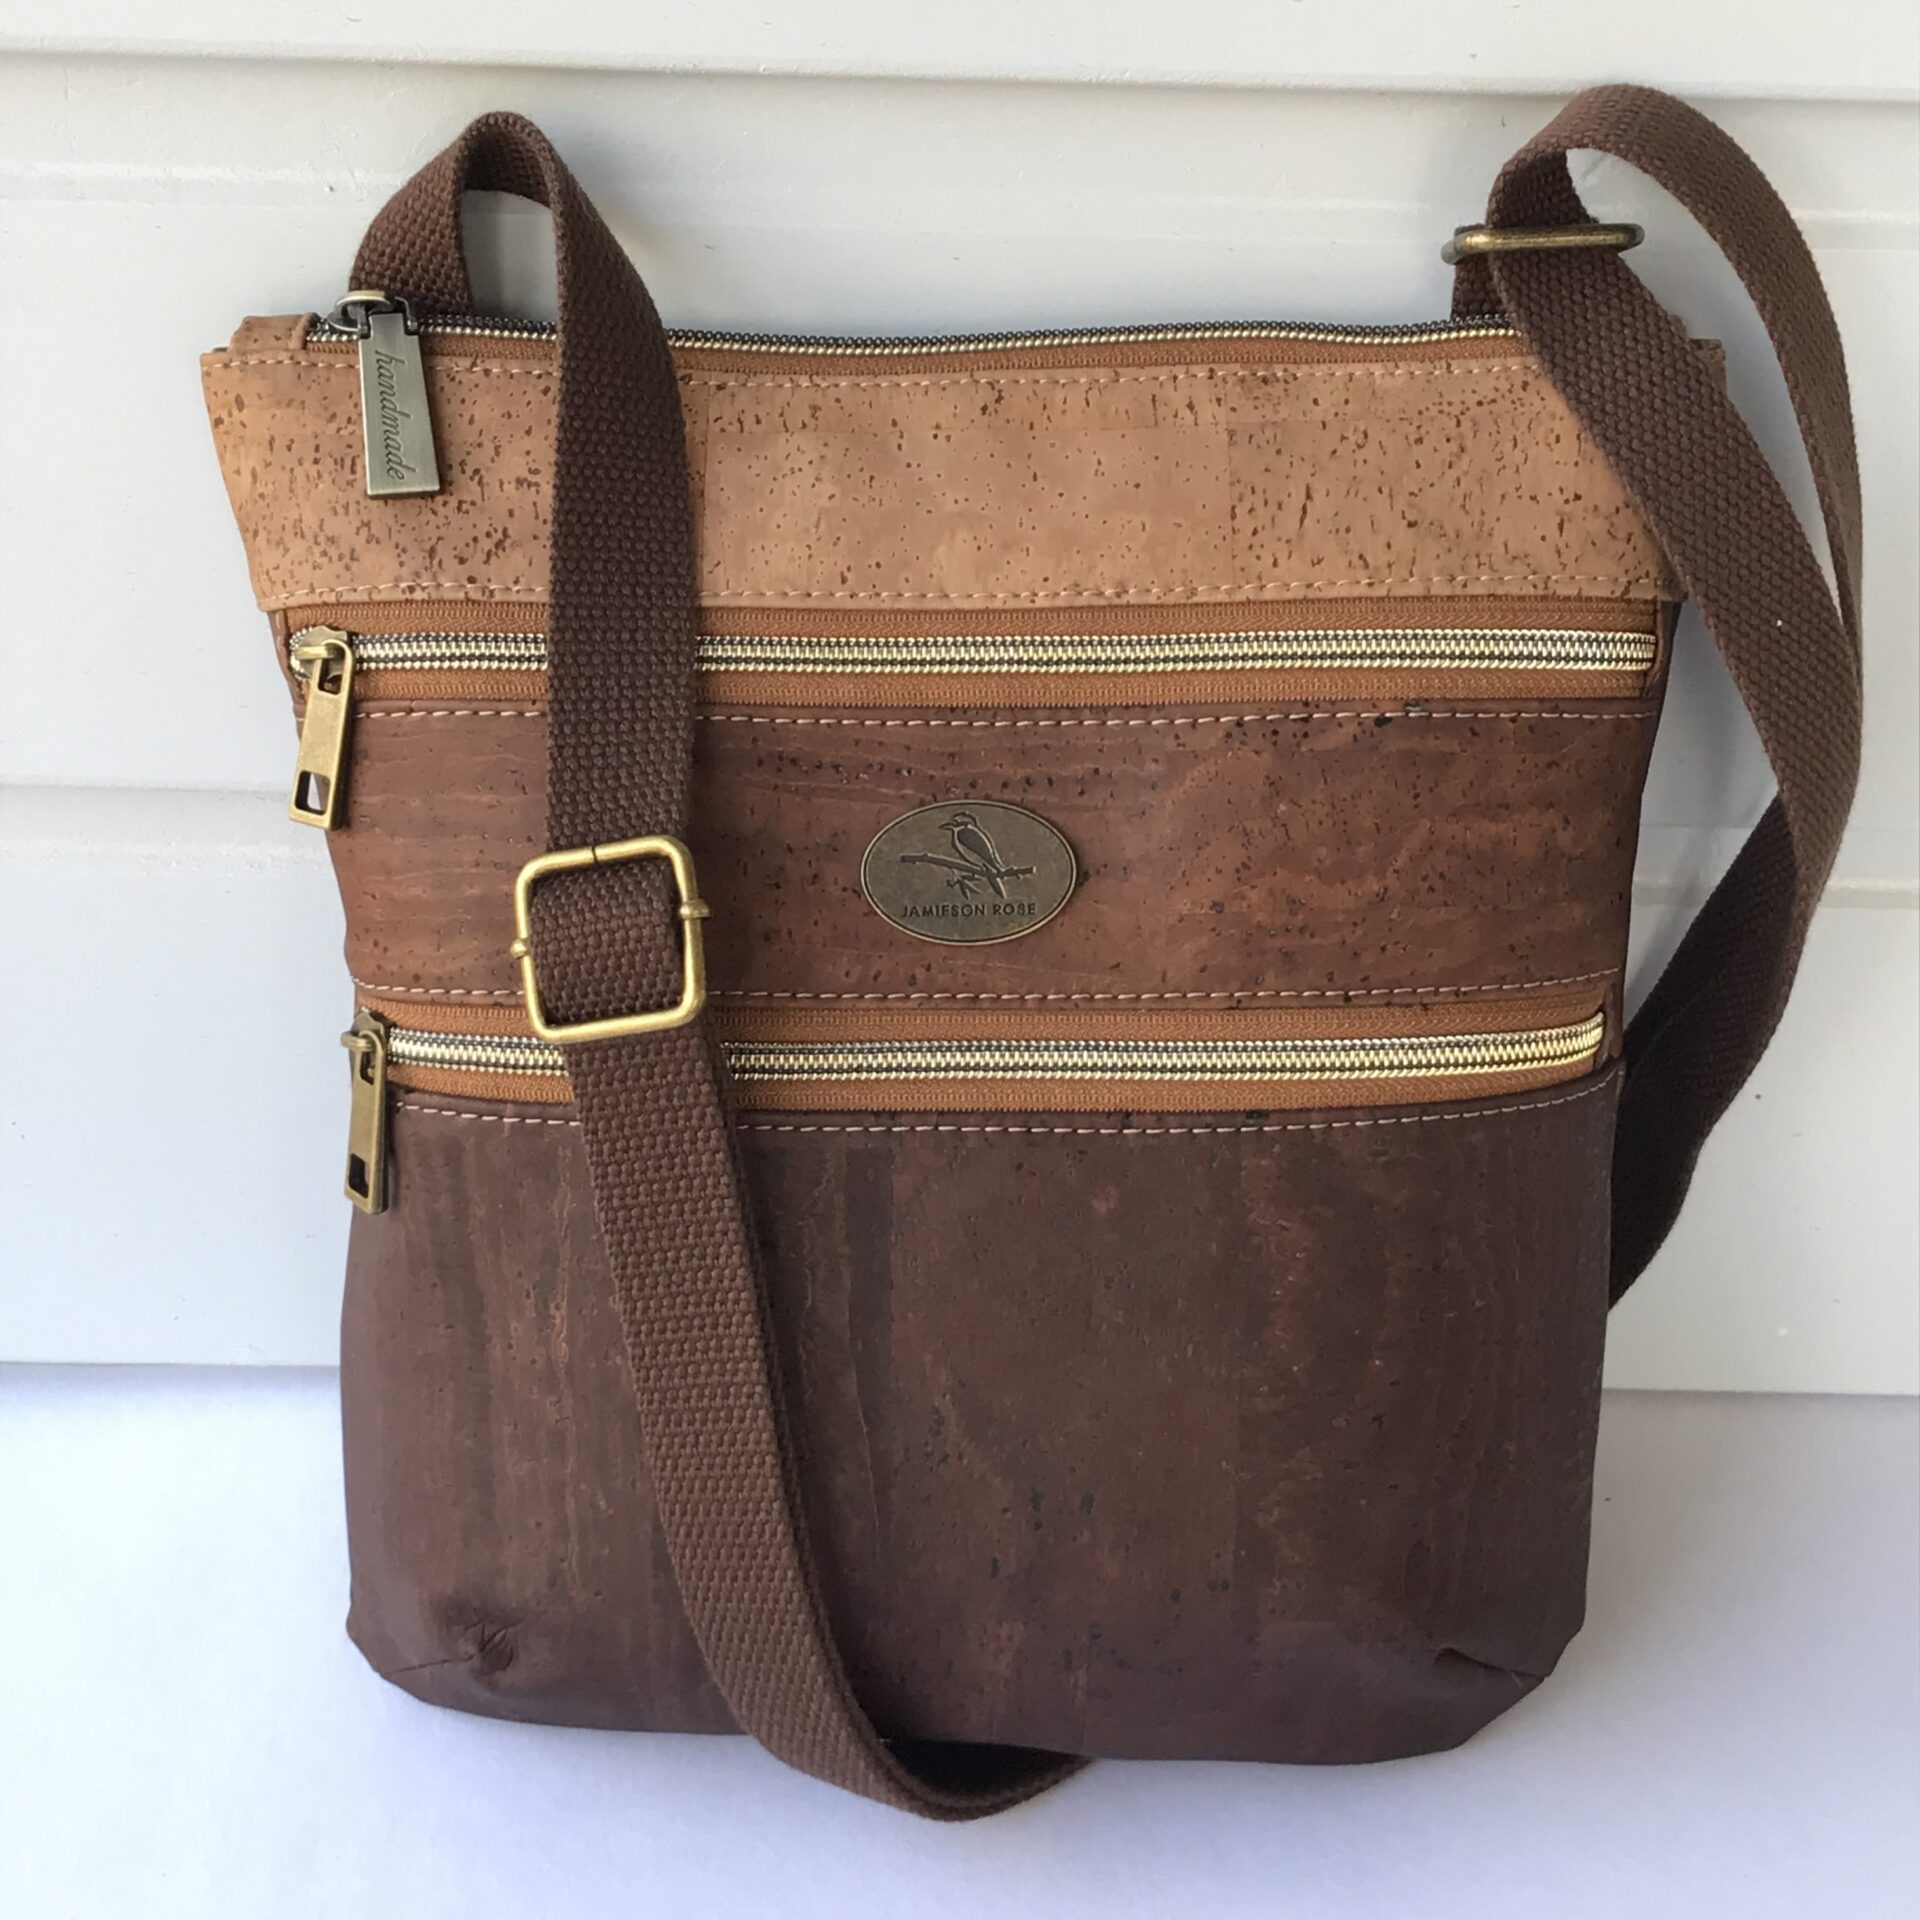 Eldorado-Triple-Zip-Crossbody-Bag-3Tone-Brown-jamieson rose